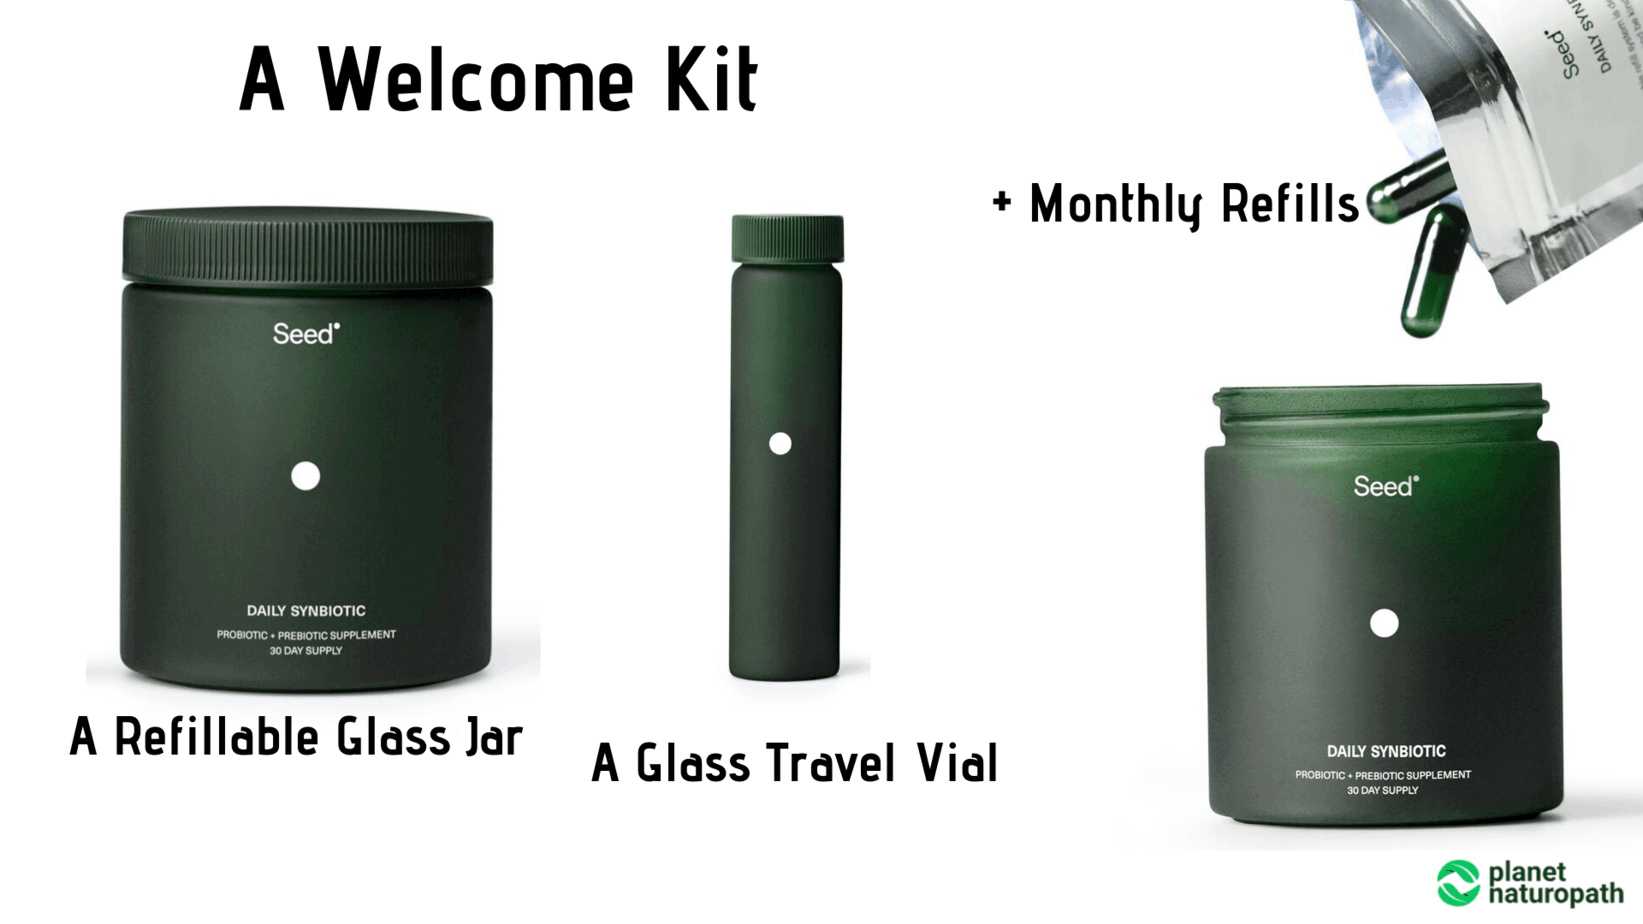 A-Welcome-Kit-and-Monthly-Refills